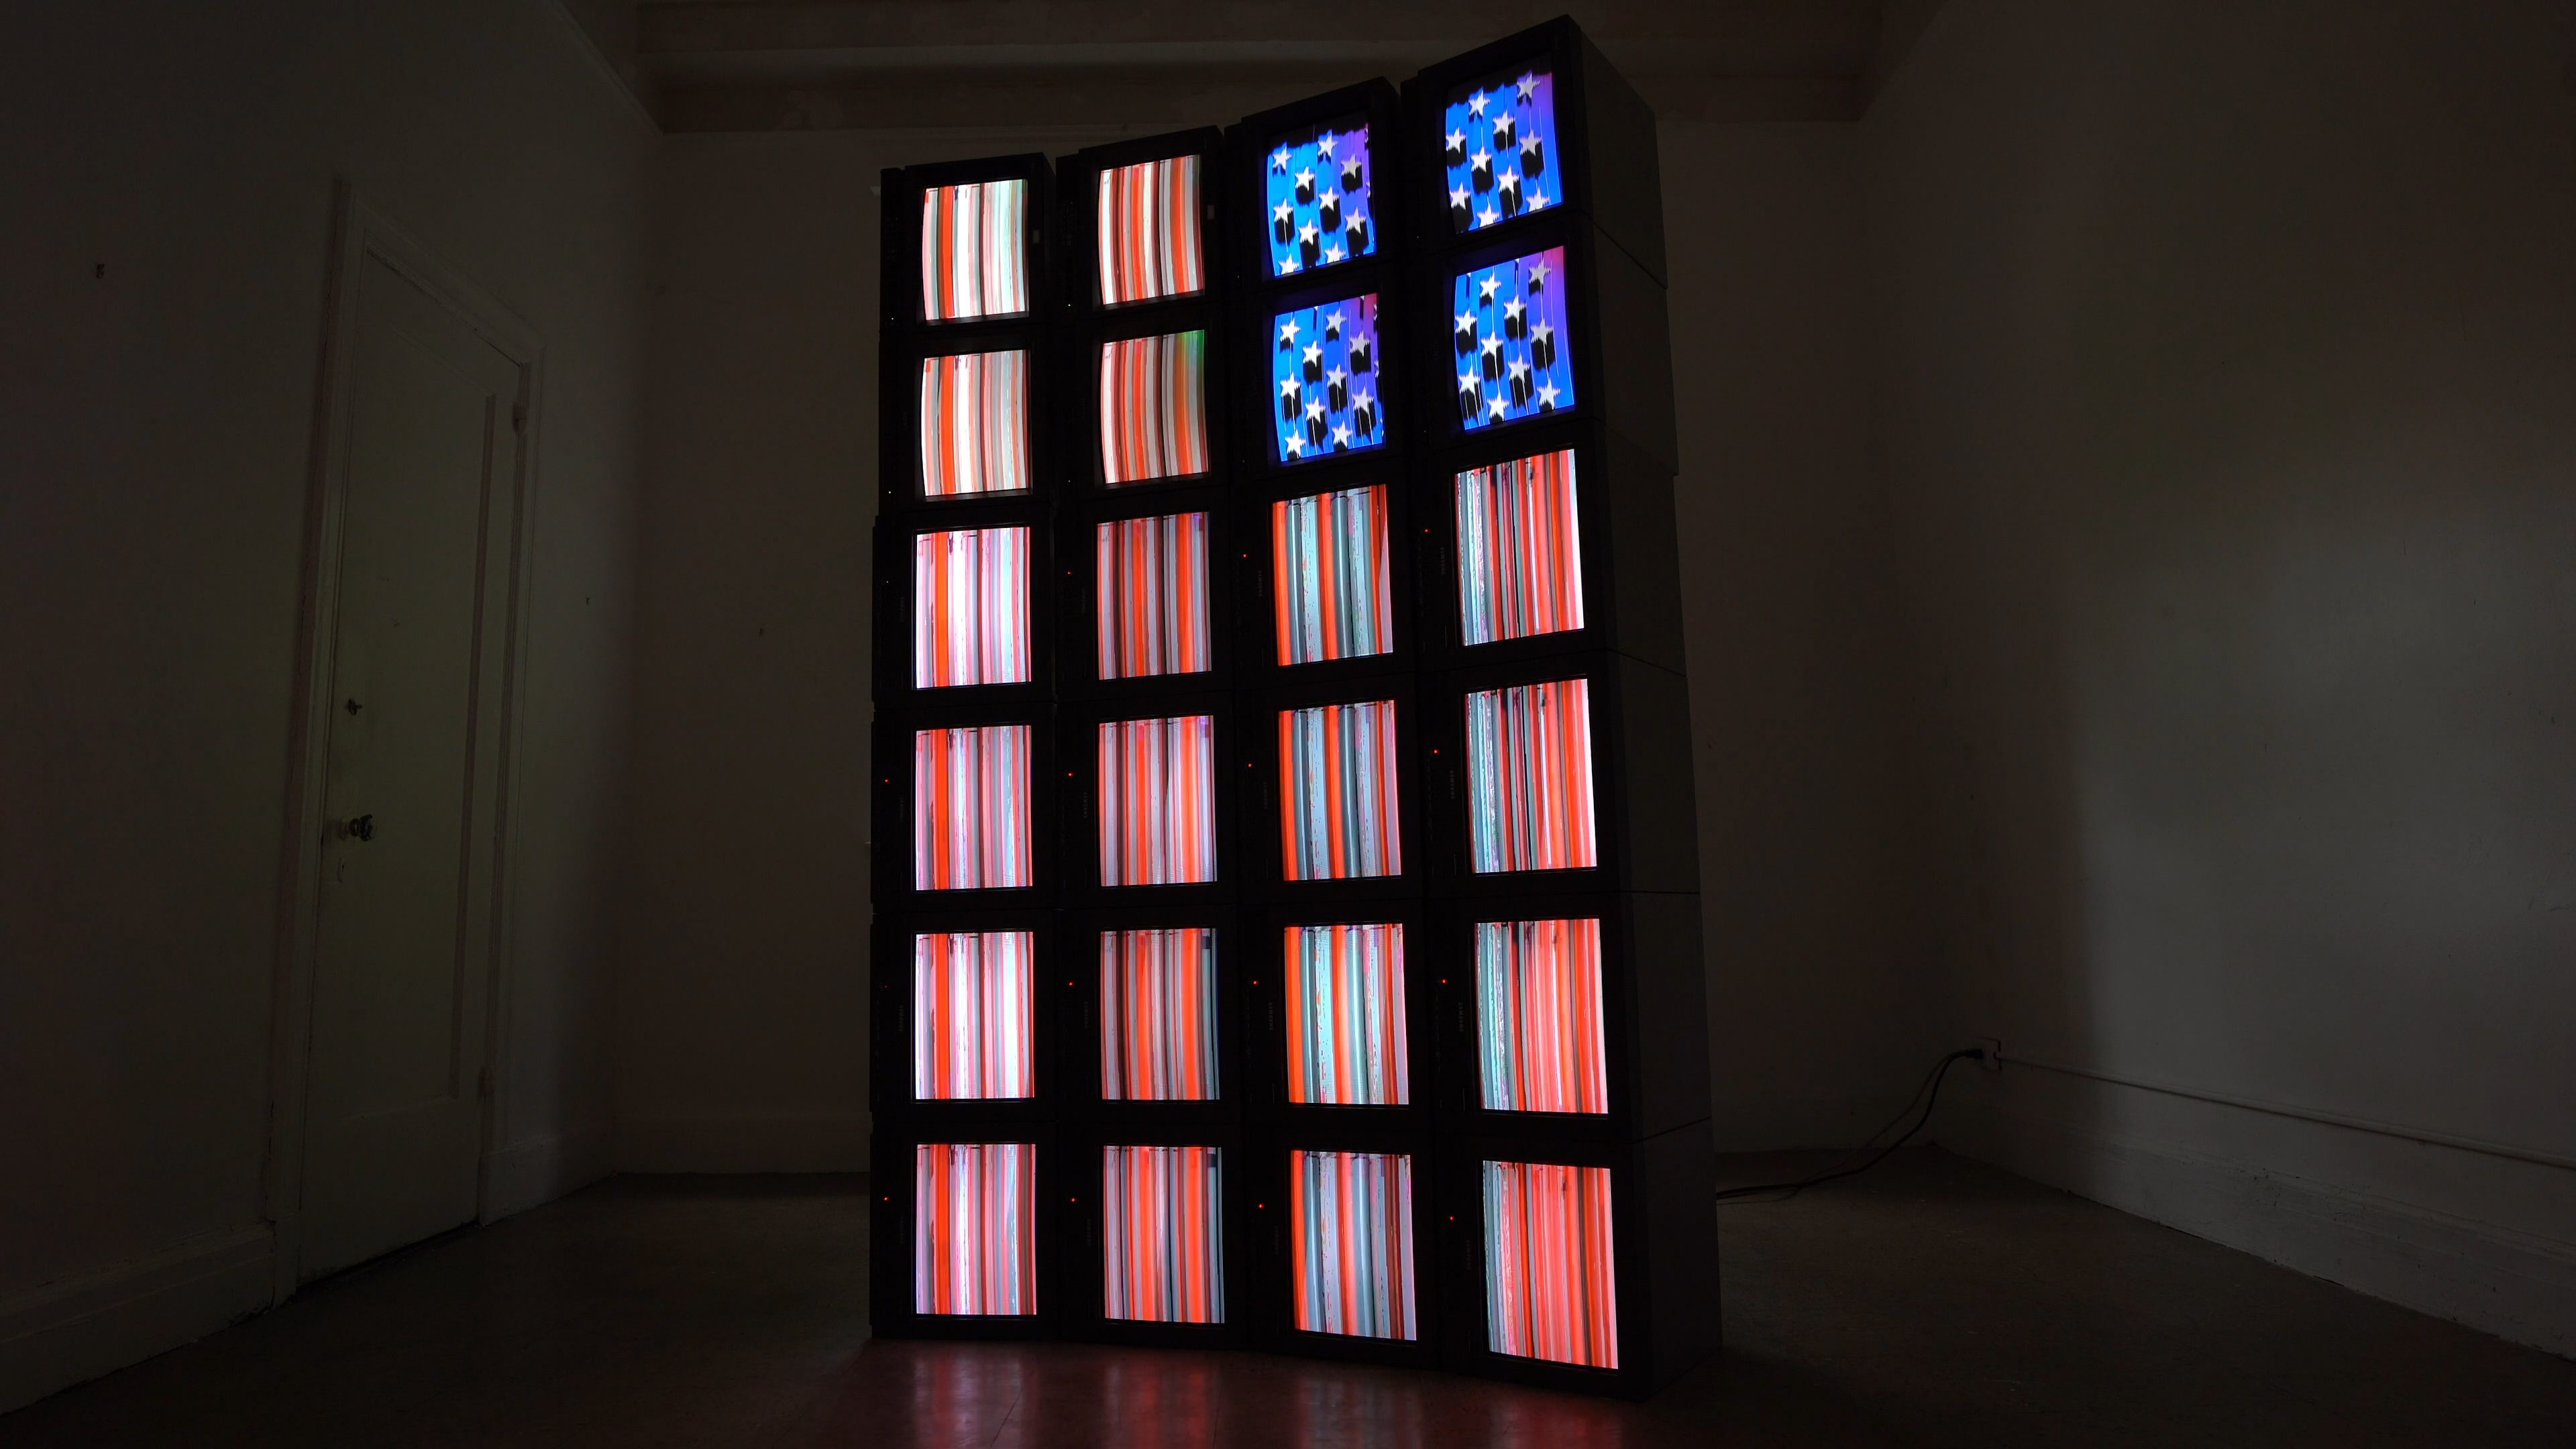 Video sculpture of 24 televisions stacked on top of each other resembling the American flag